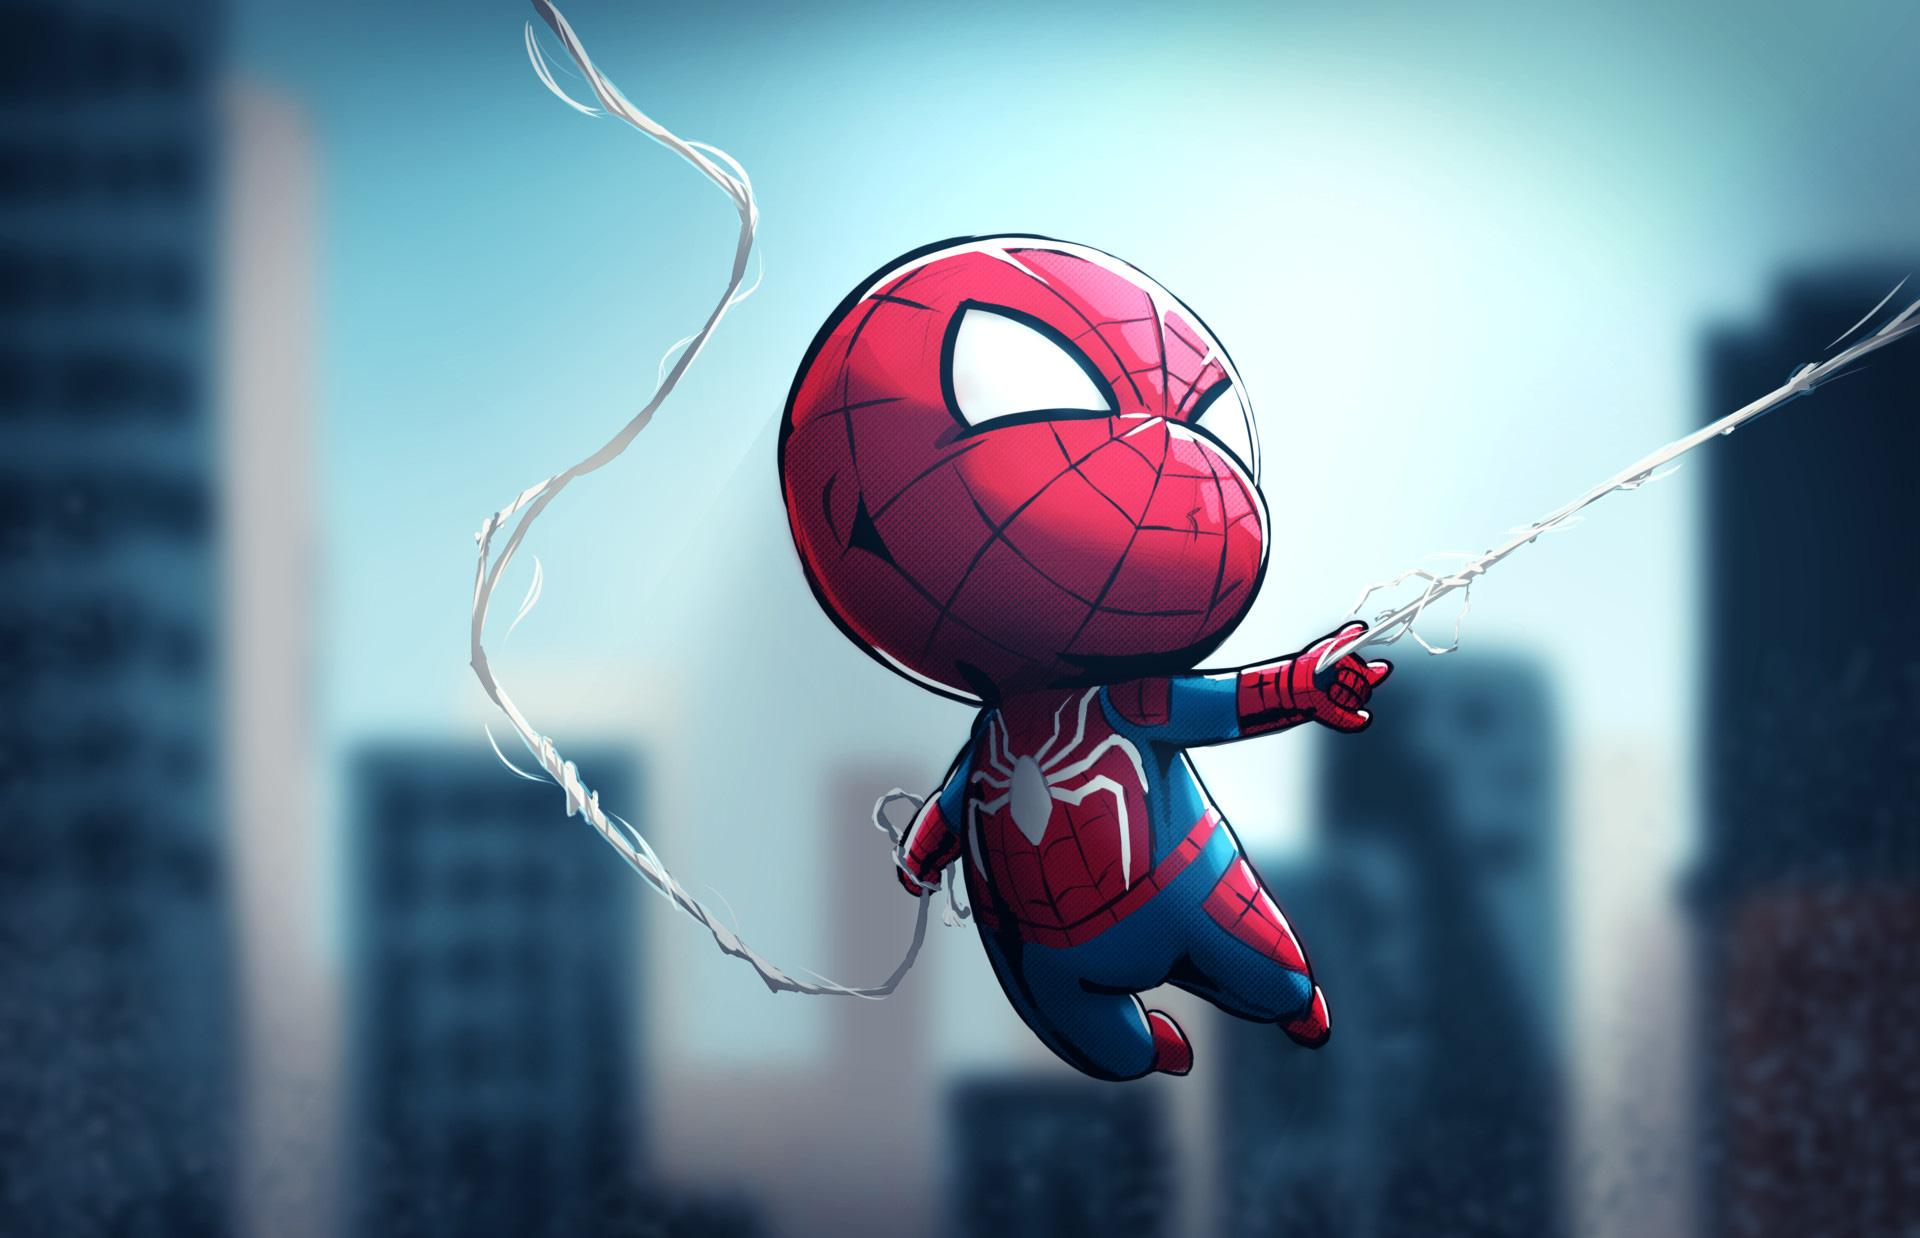 Download Spiderman Wallpaper Hd Backgrounds Download Itlcat